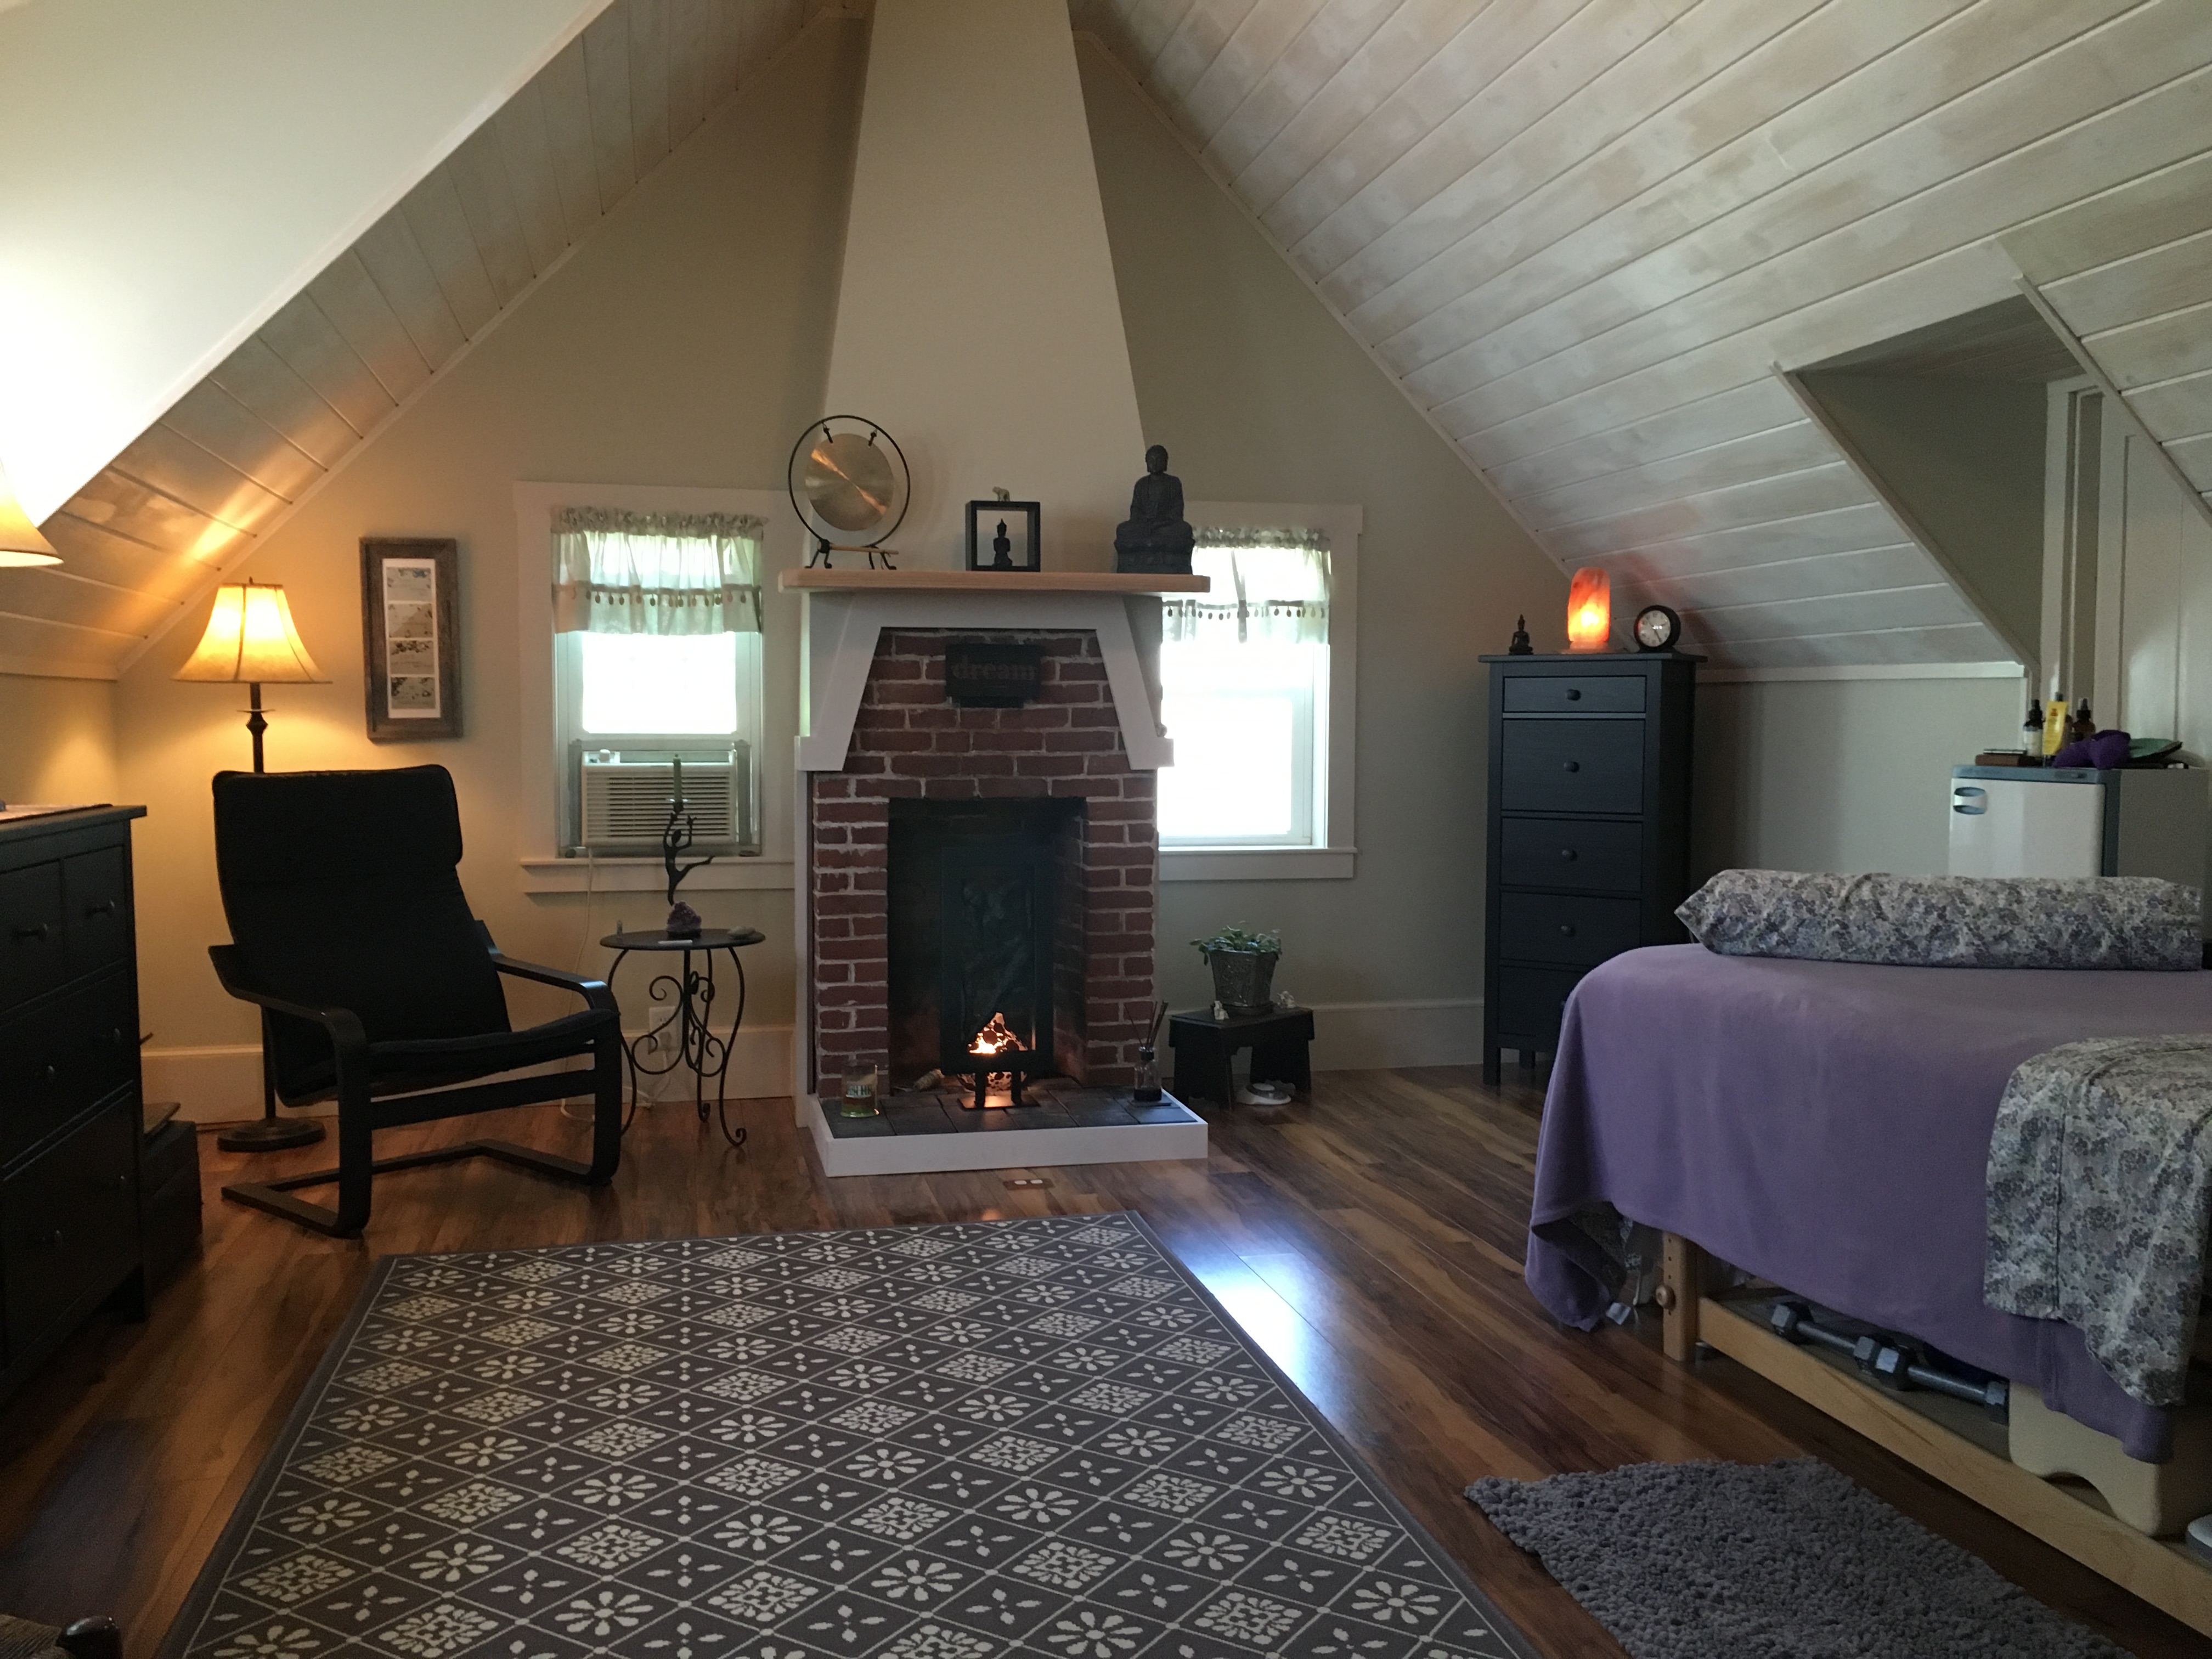 Massage therapy and energy work room in Boothbay Harbor, Maine at Whispering Winds of Change